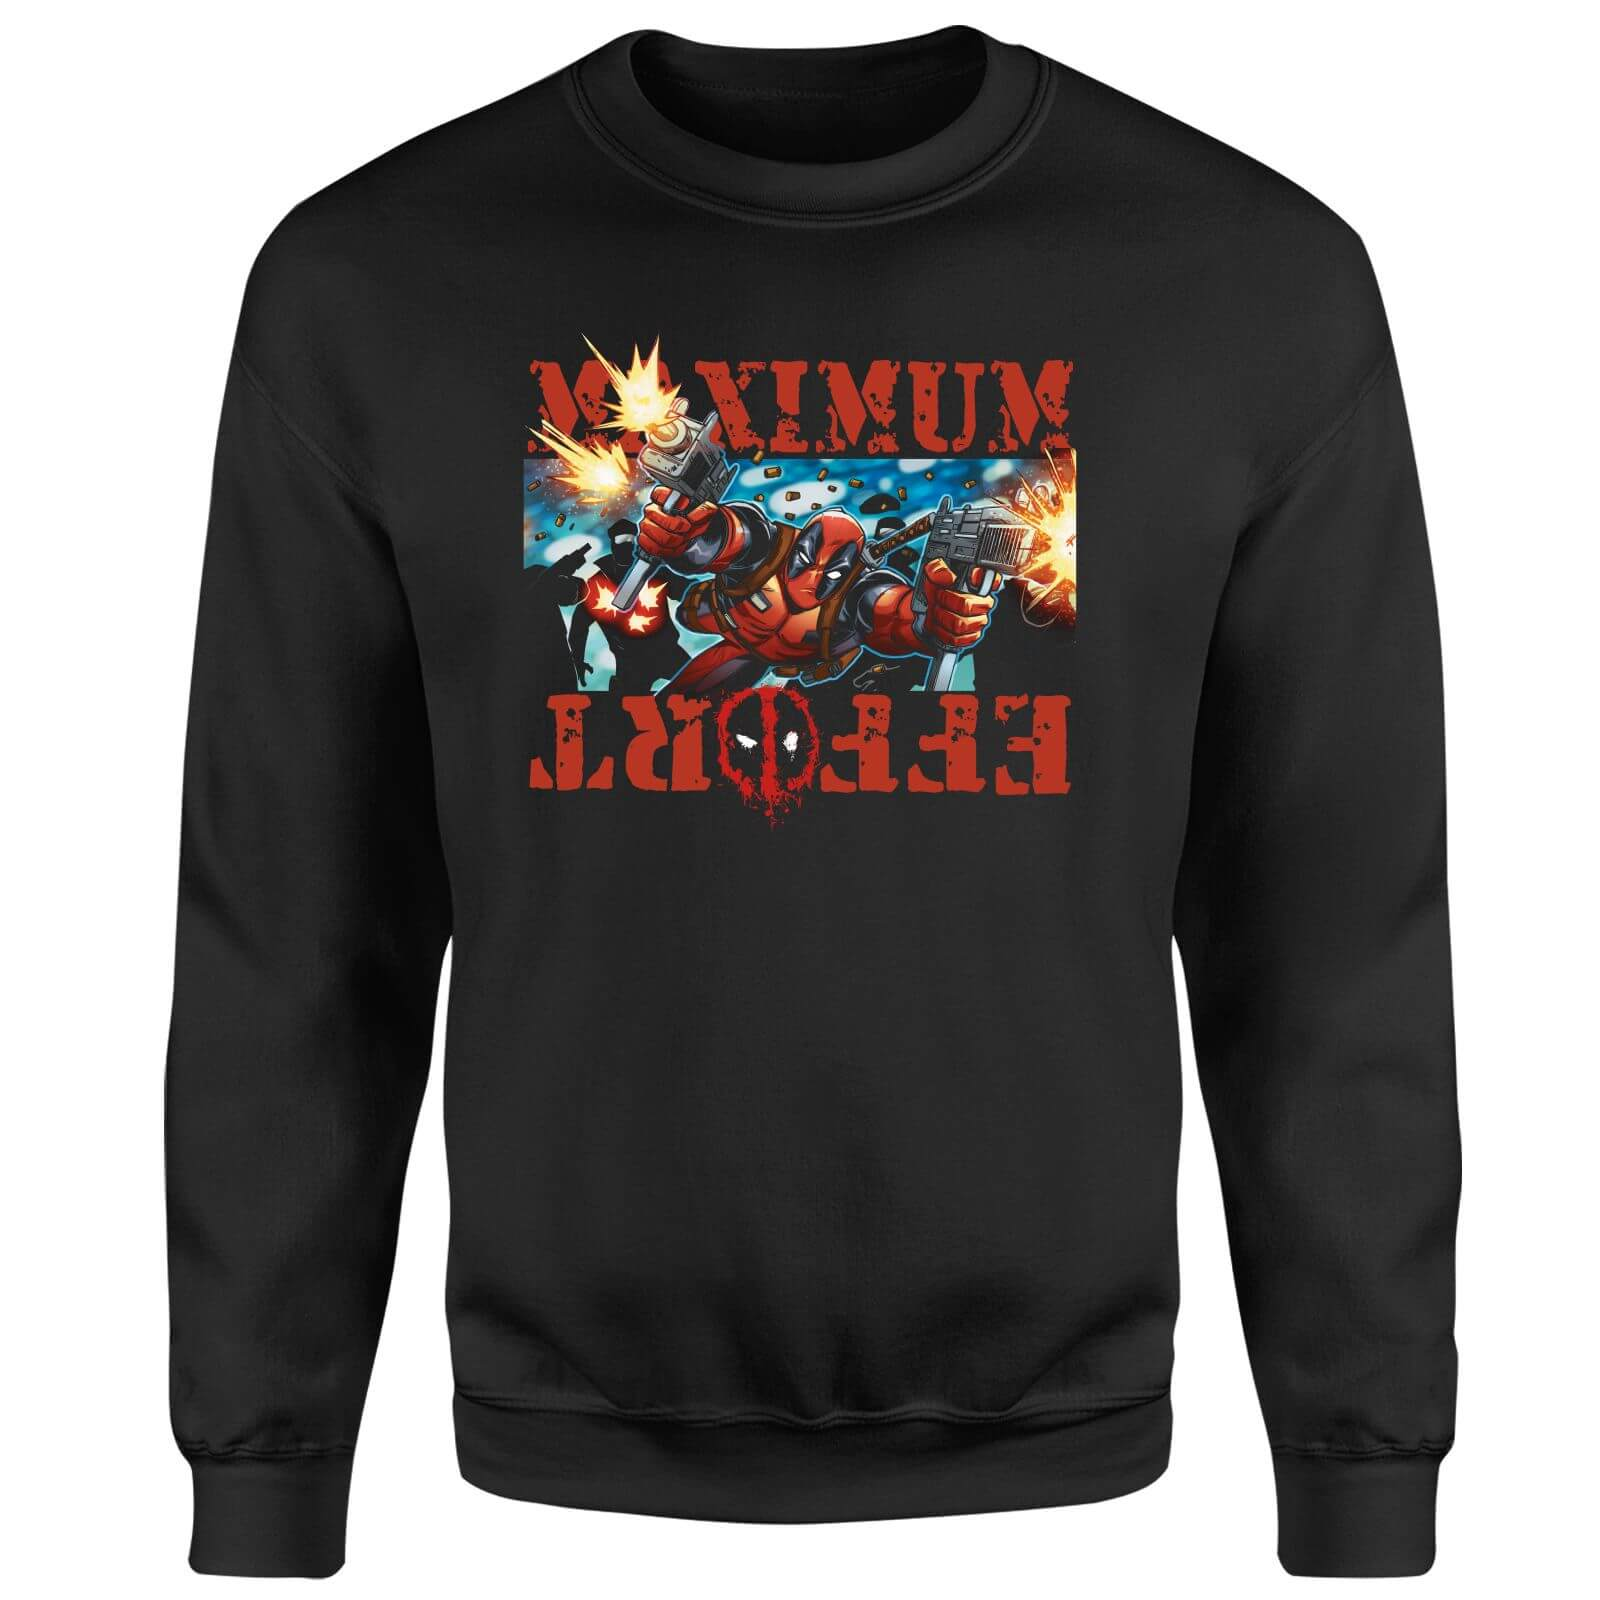 Marvel Deadpool Maximum Effort Sweatshirt - Black